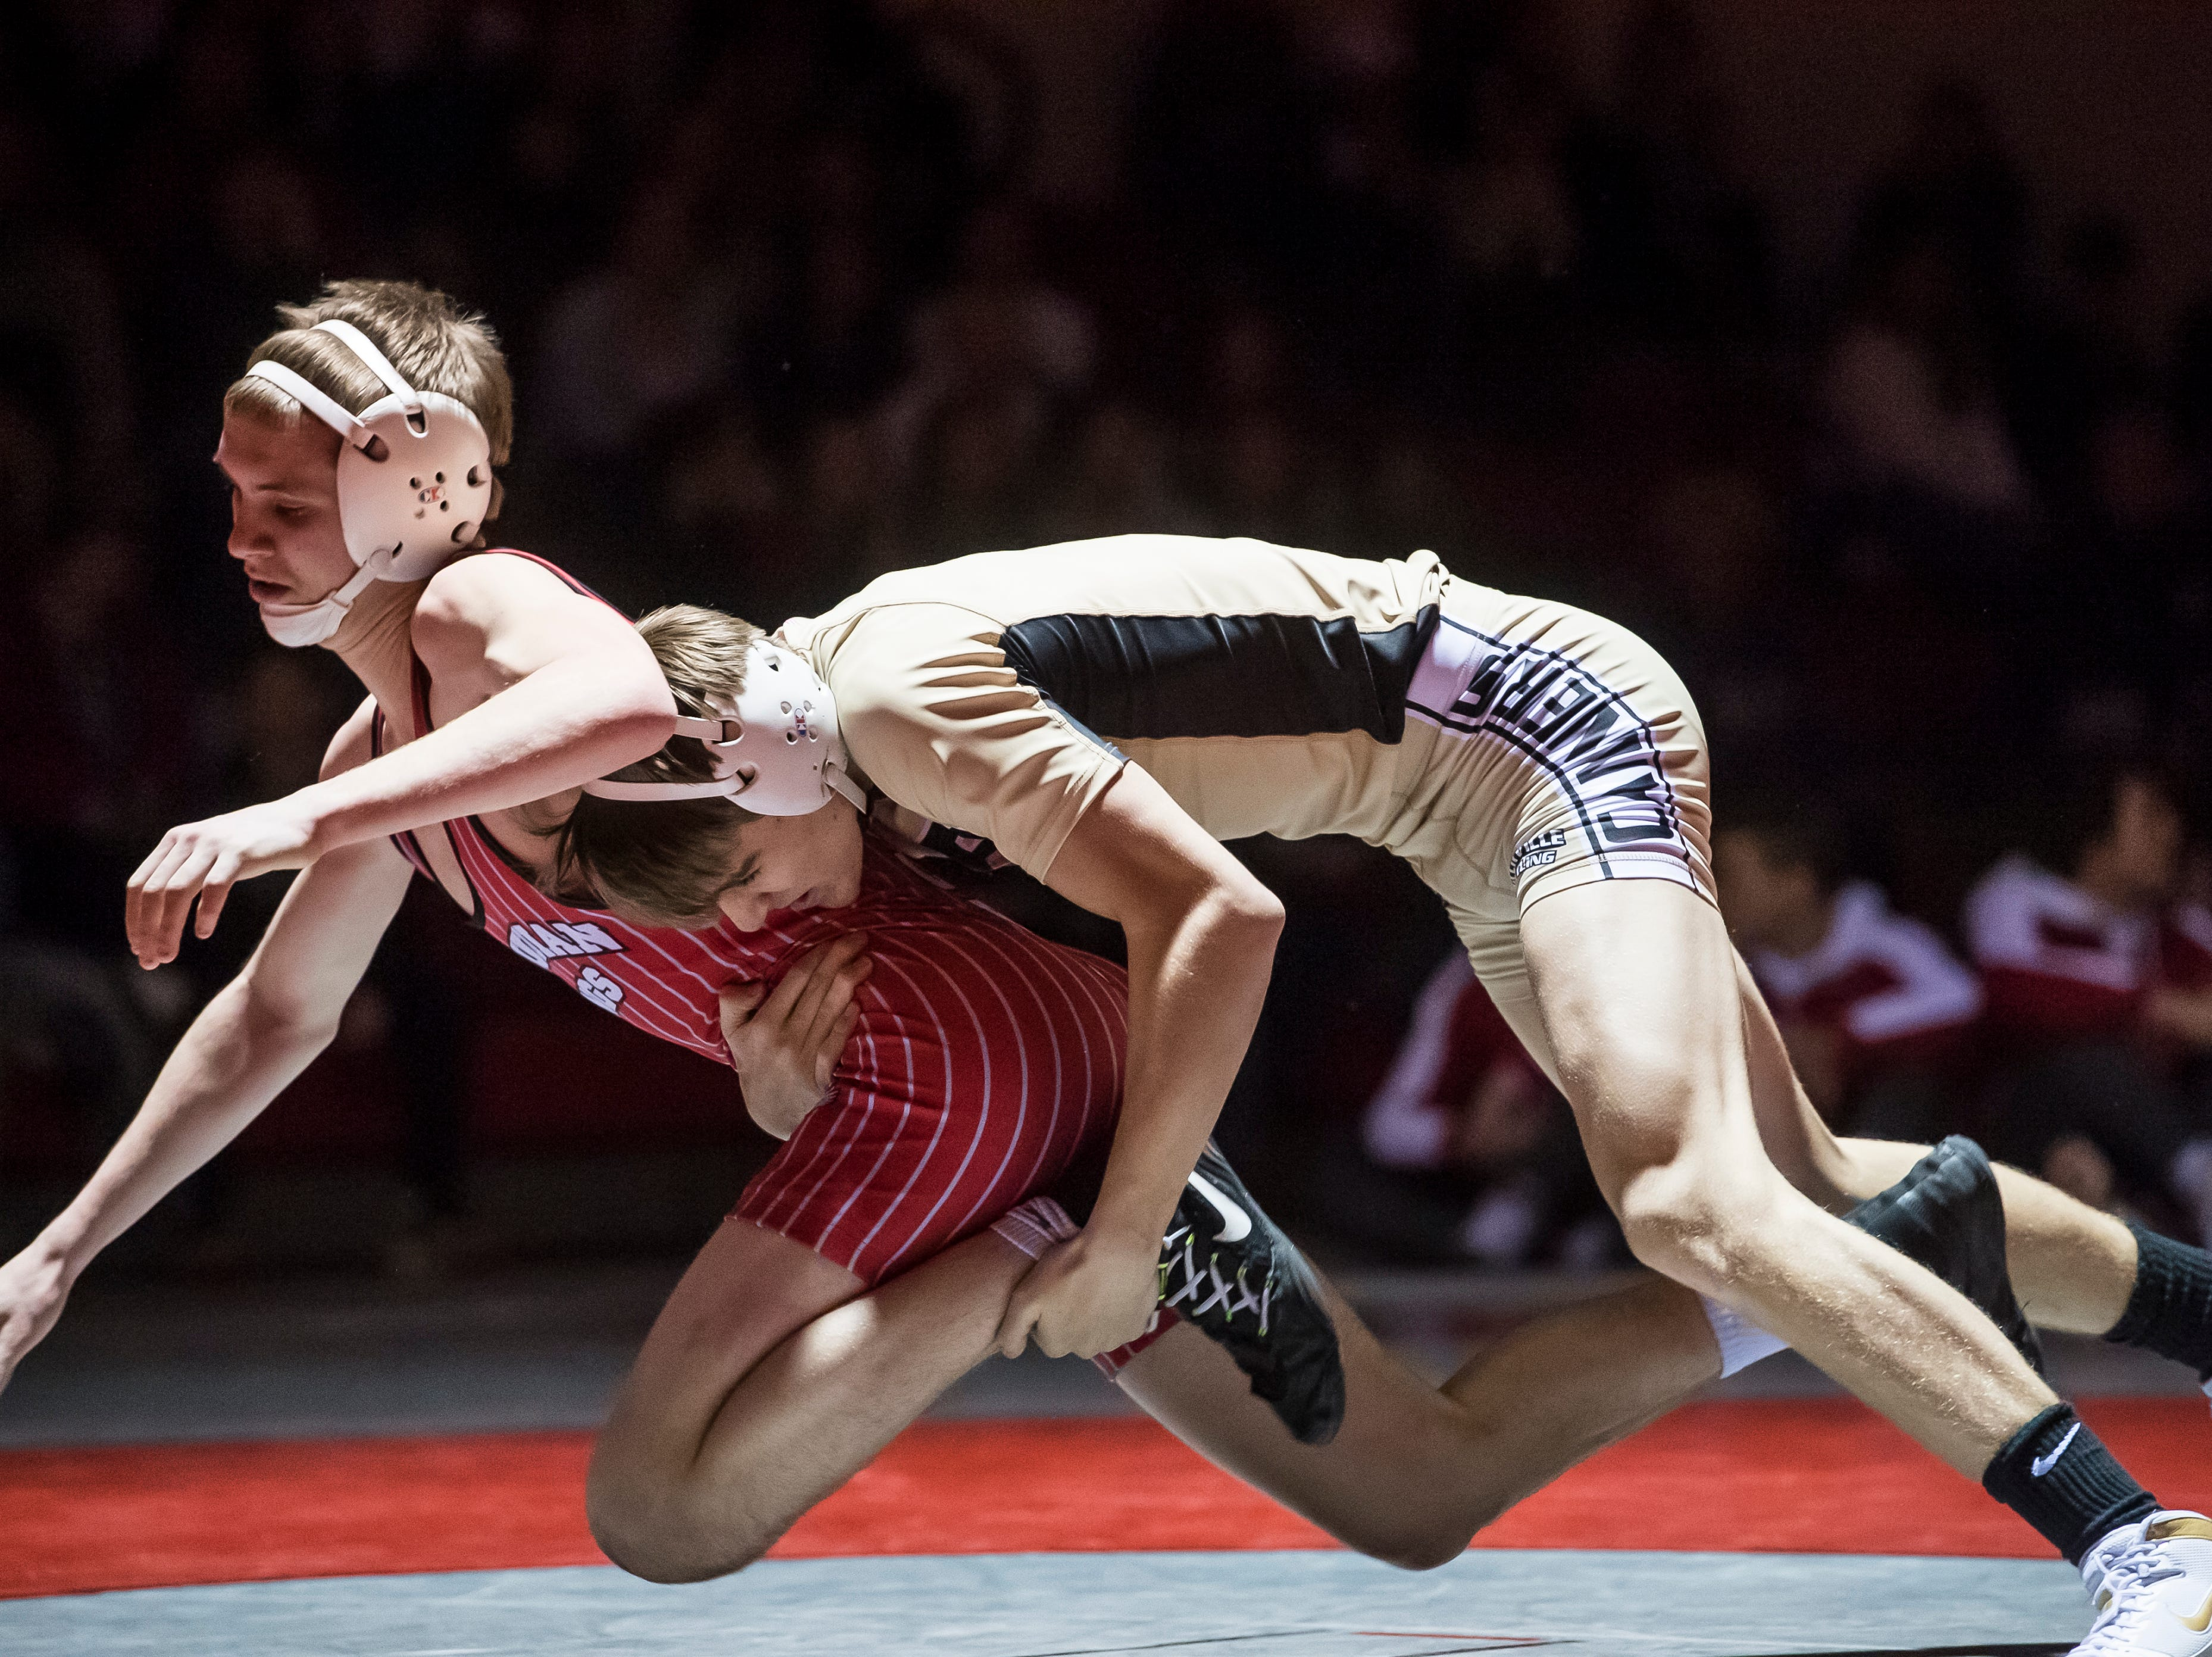 Bermudian Springs' Tyler Rawson, left, wrestles Biglerville's Joshua Tuckey in the 132-pound bout at Bermudian Springs High School on December 13, 2018. Tuckey won 6-5 but the Eagles won, 51-27.